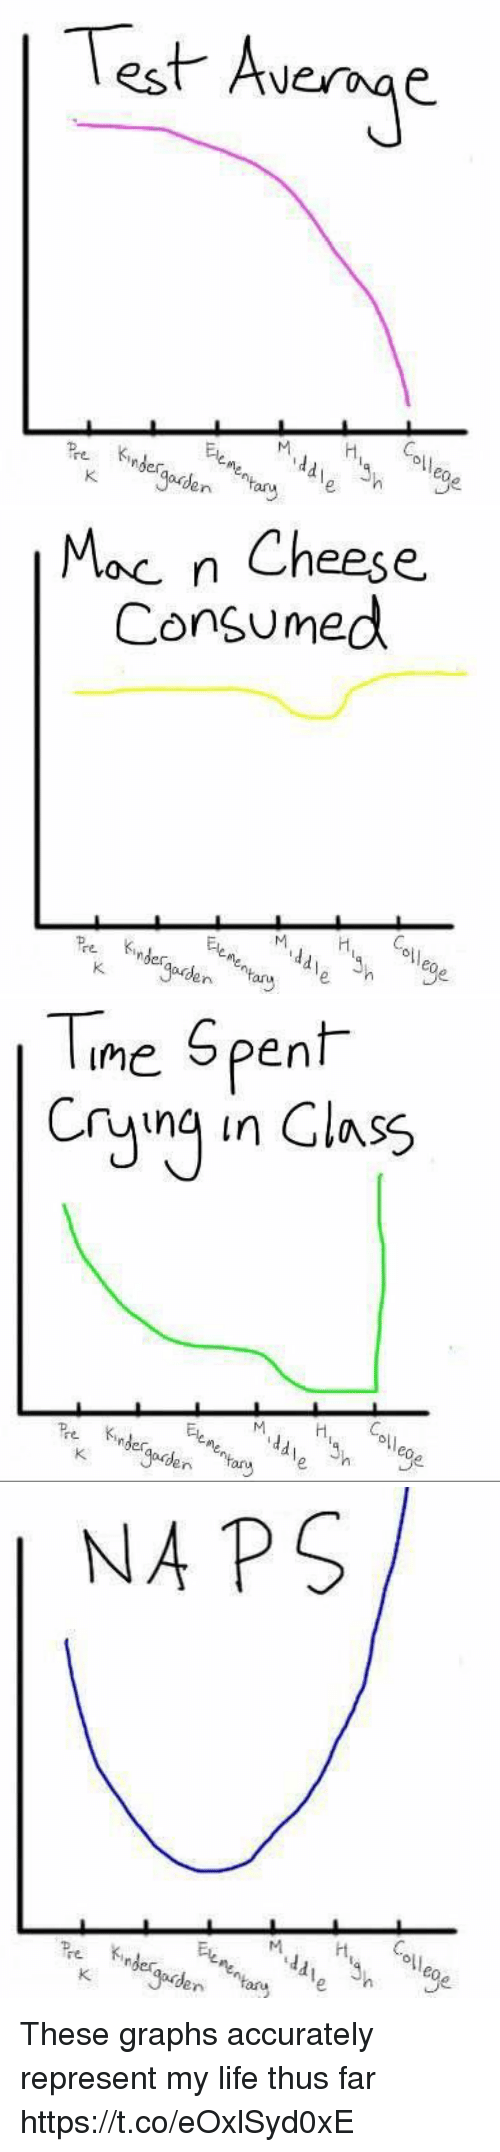 Life, Test, and Girl Memes: Test Avege  oll  eo  n ary   Moc n Cheese.  Consumed  이  noes  Jaudary   Tne Spent  Cryng in Class  Ele  ol  re inder  eo  ern   NA PS  HC  oll These graphs accurately represent my life thus far https://t.co/eOxlSyd0xE